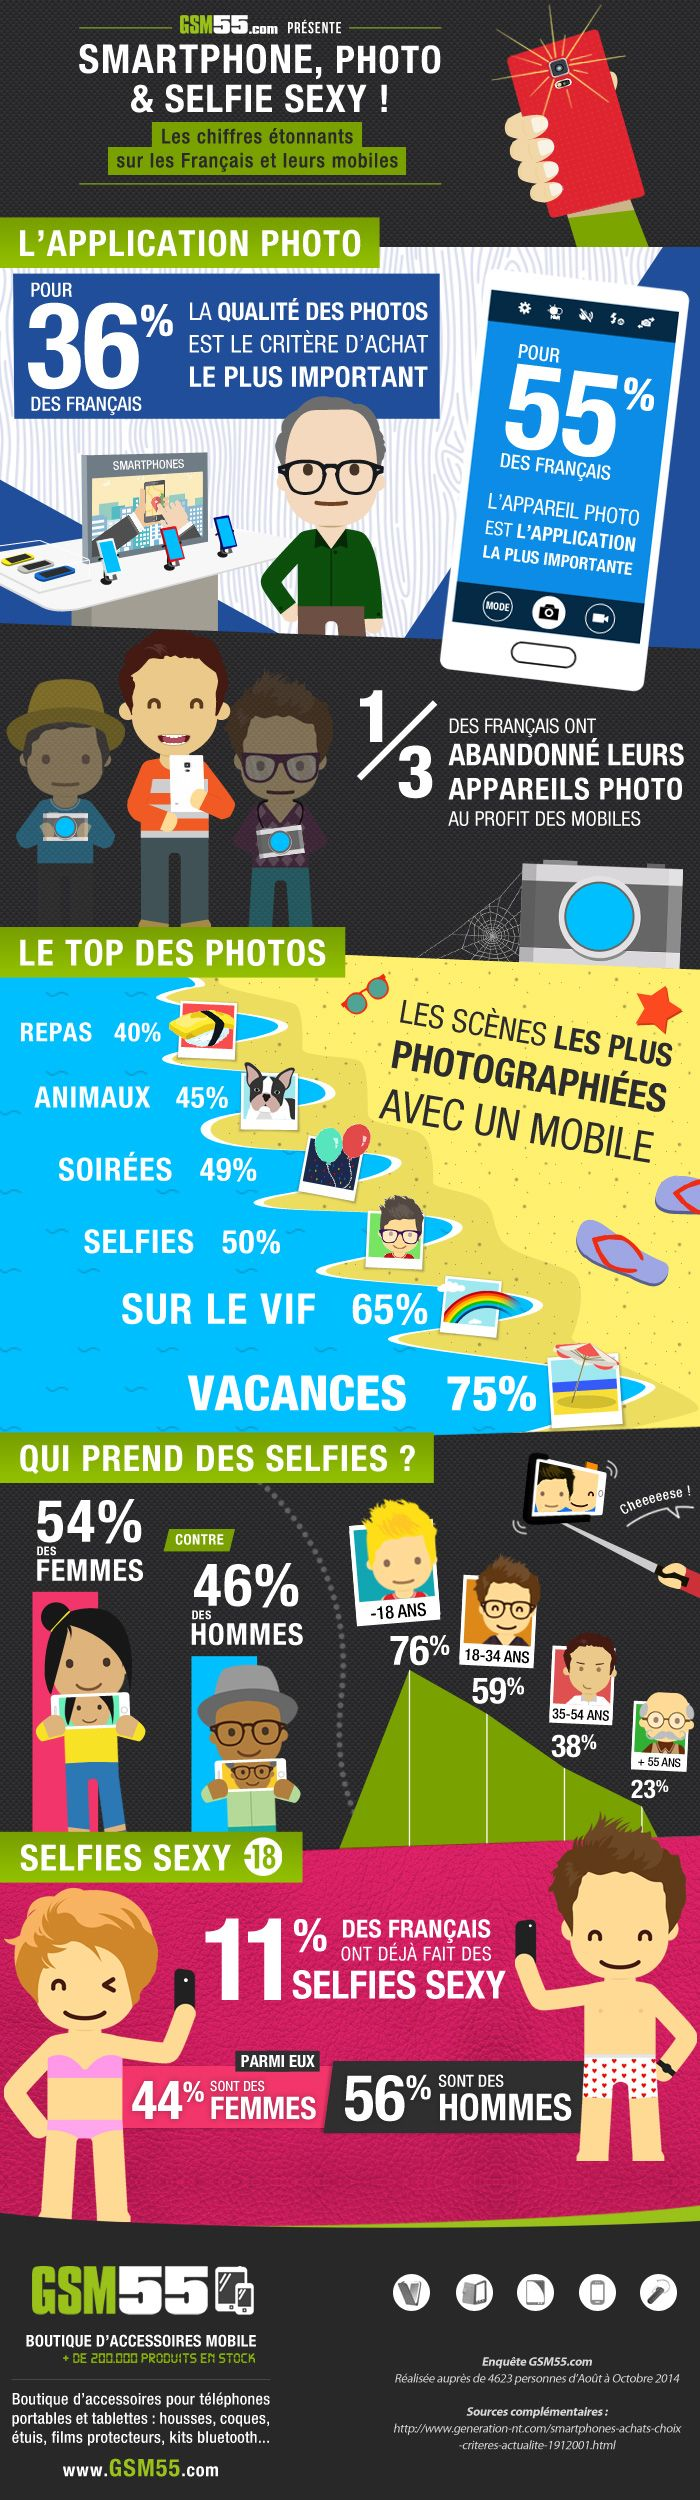 infographie smartphone photo